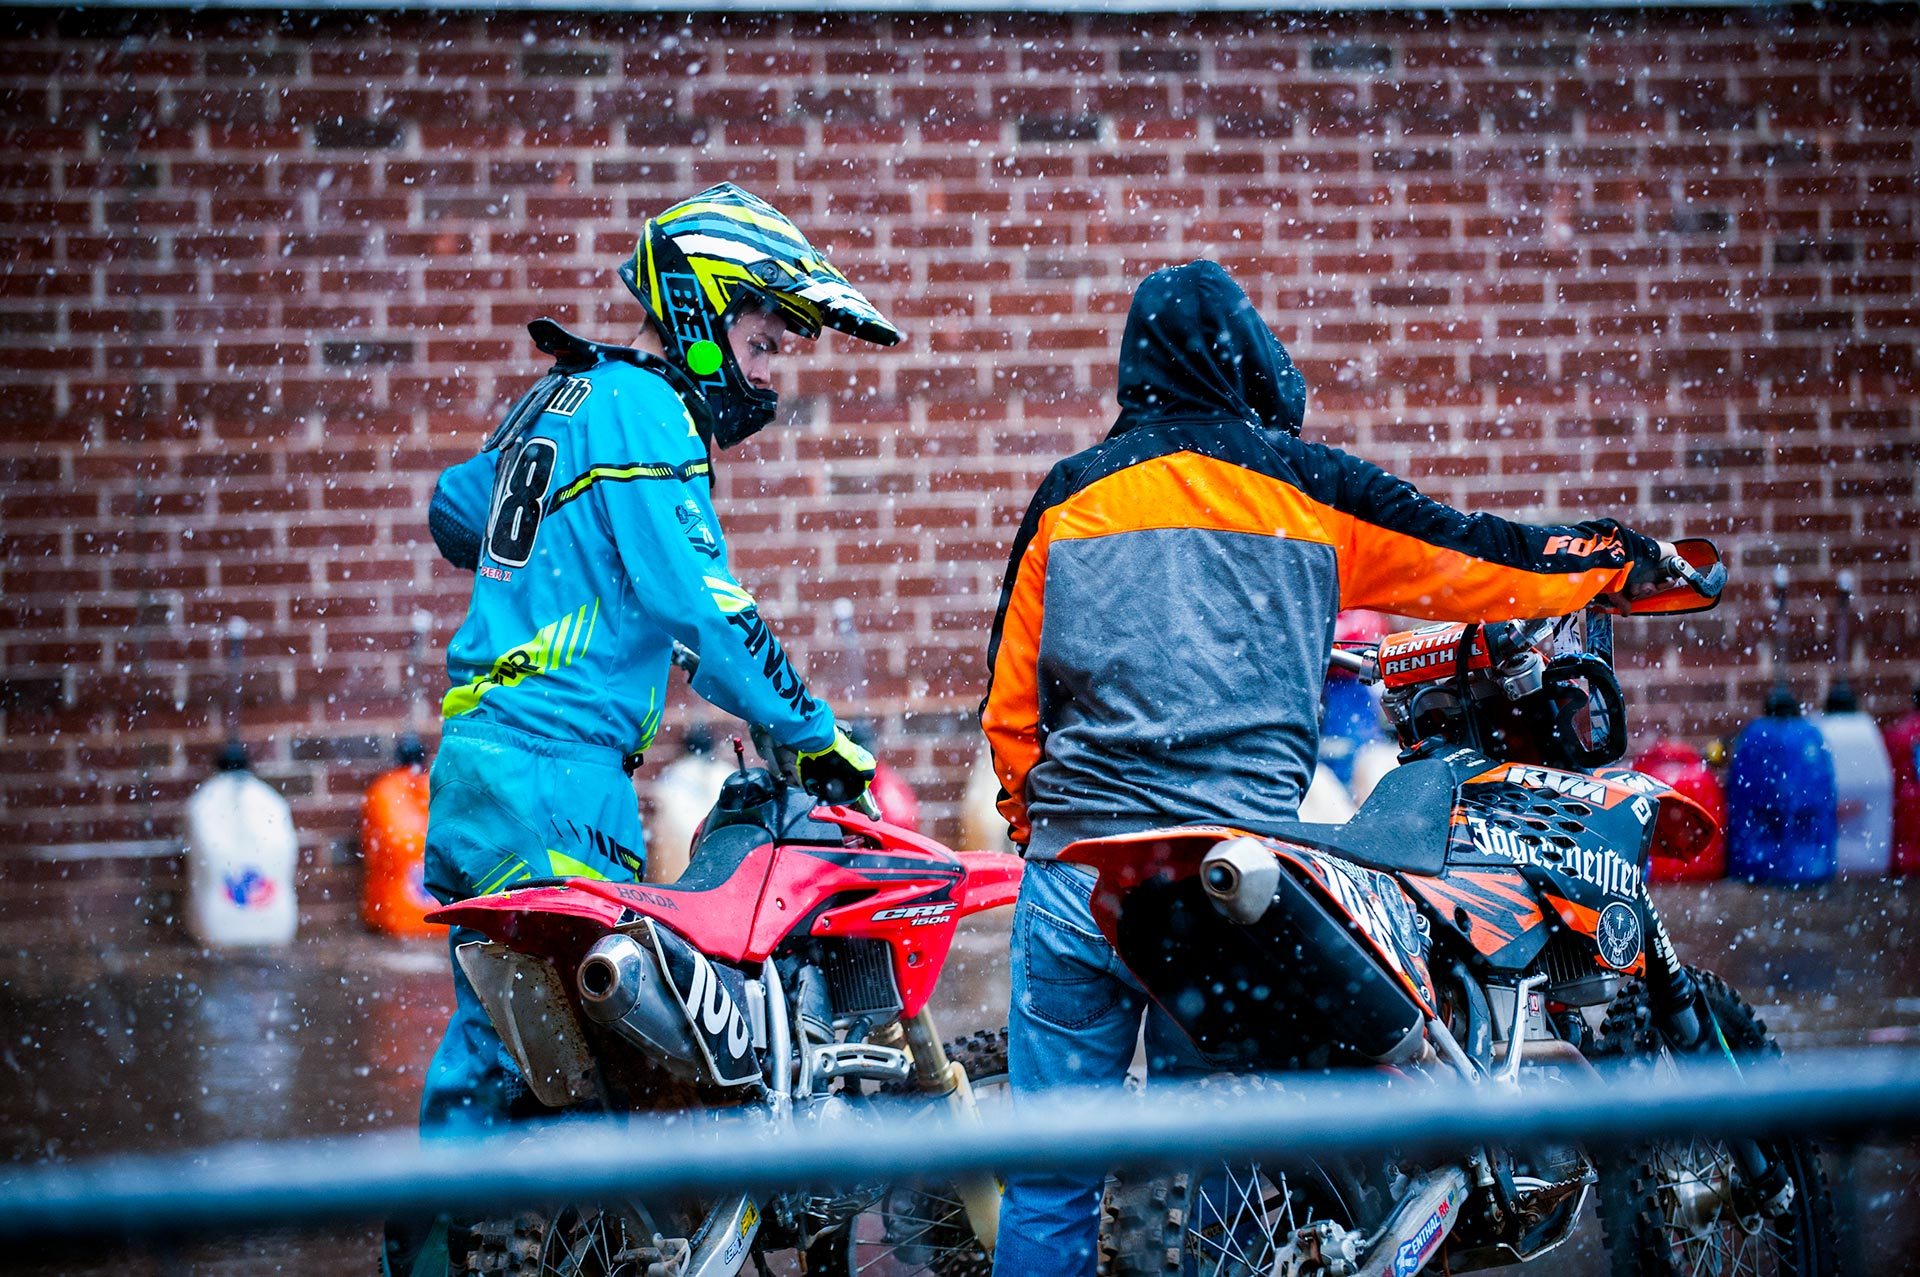 Racers fulling and reding thier bikes for the races in the snow.